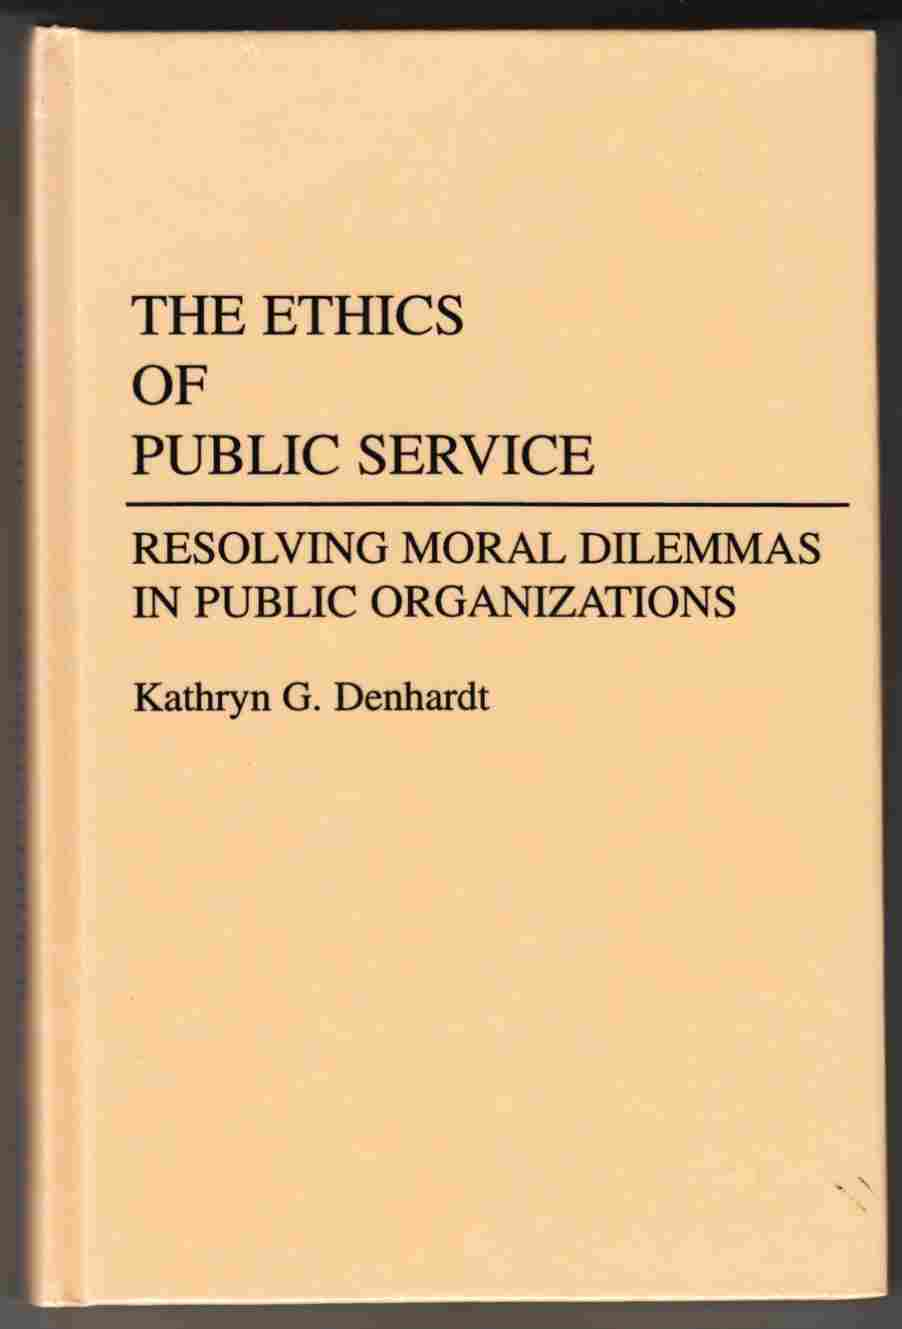 Image for The Ethics of Public Service Resolving Moral Dilemmas in Public Organizations